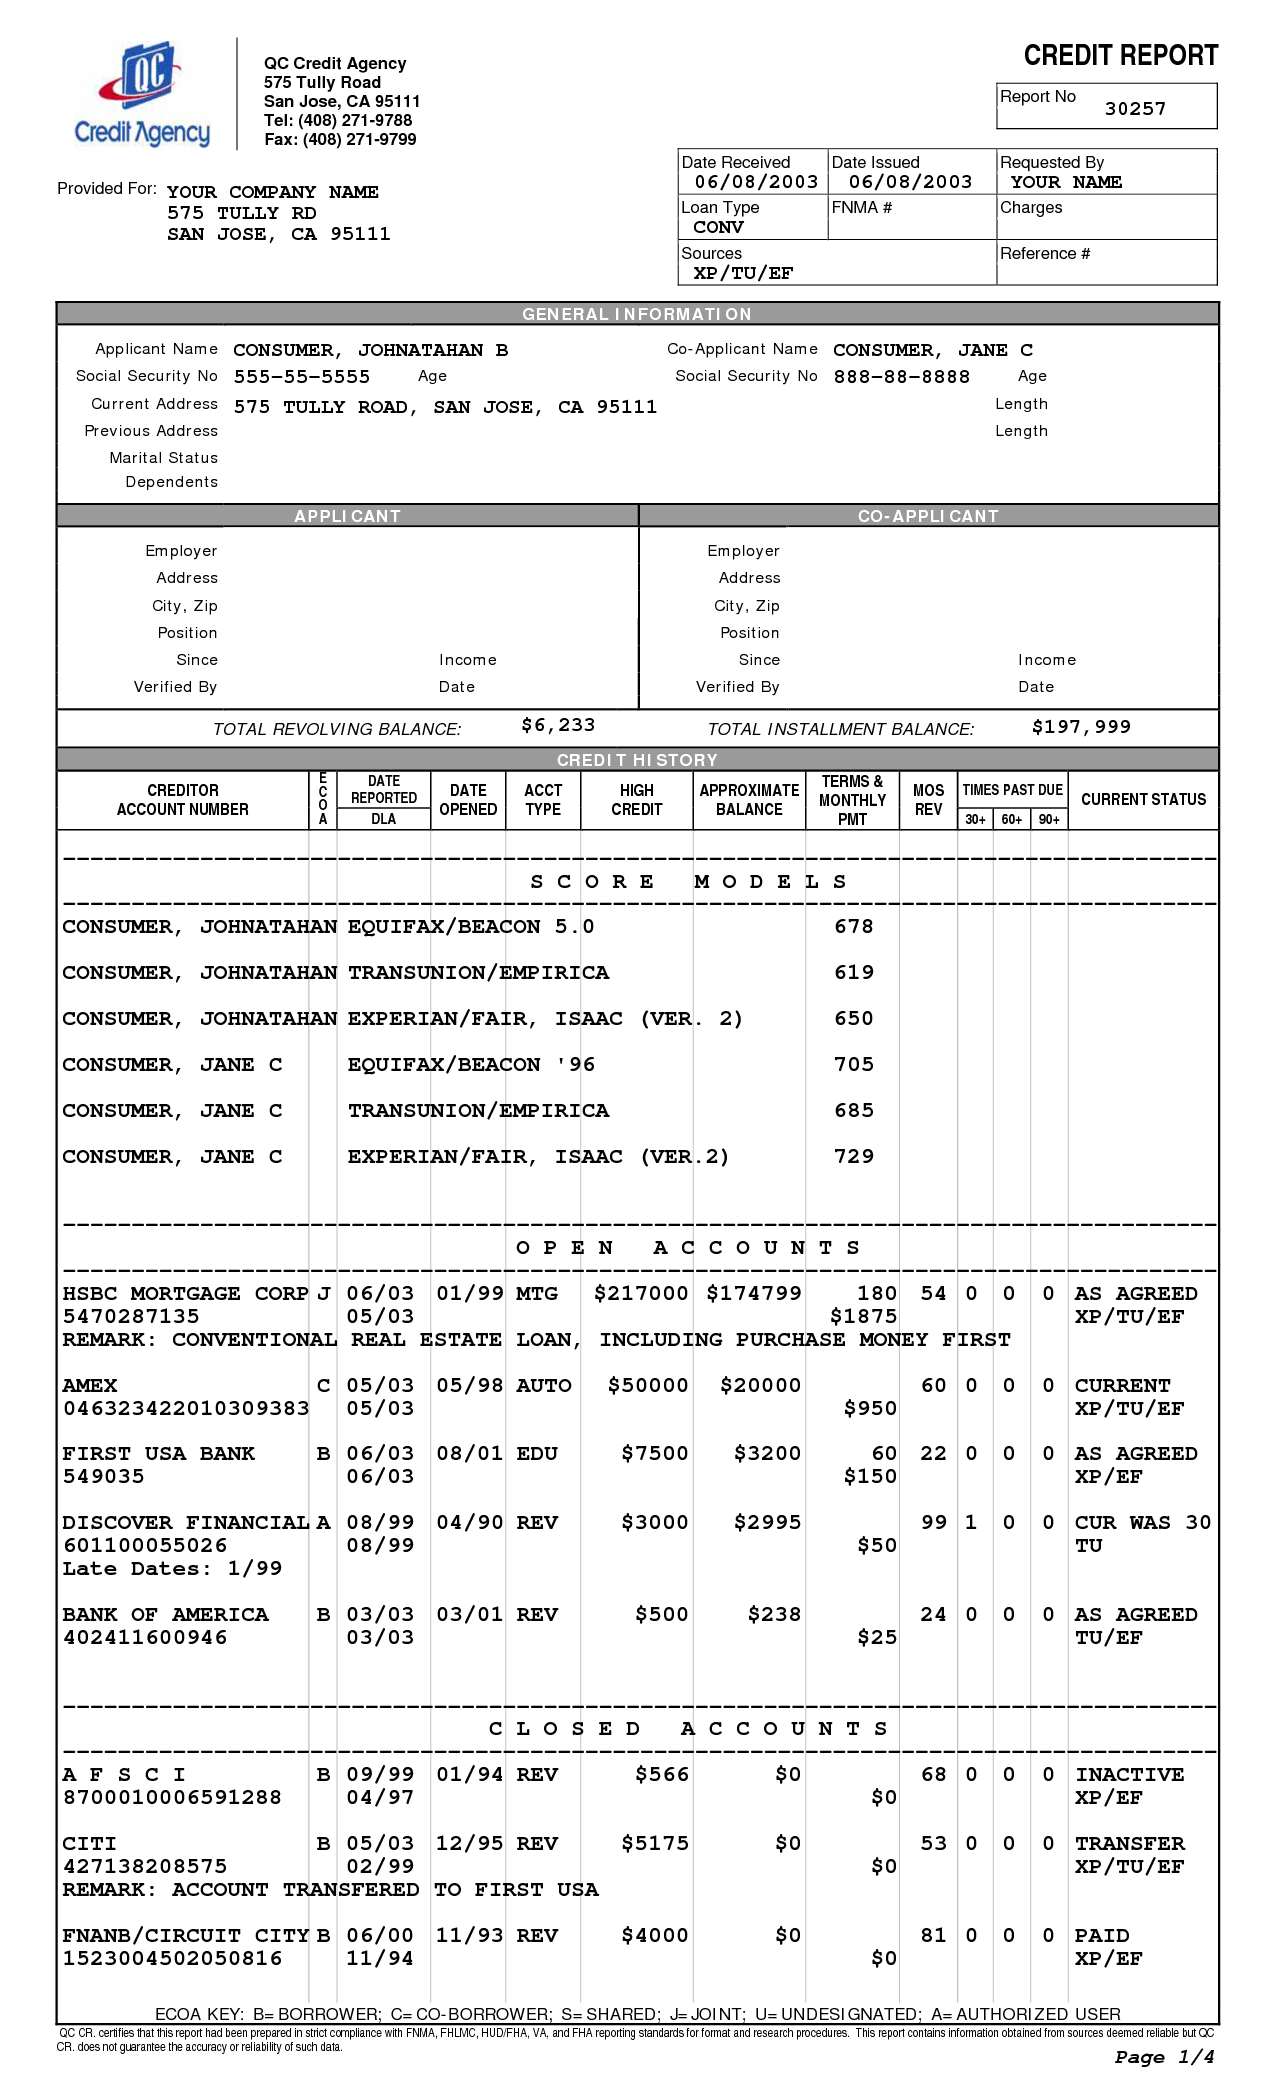 Credit Reports Template | aplg planetariums.org